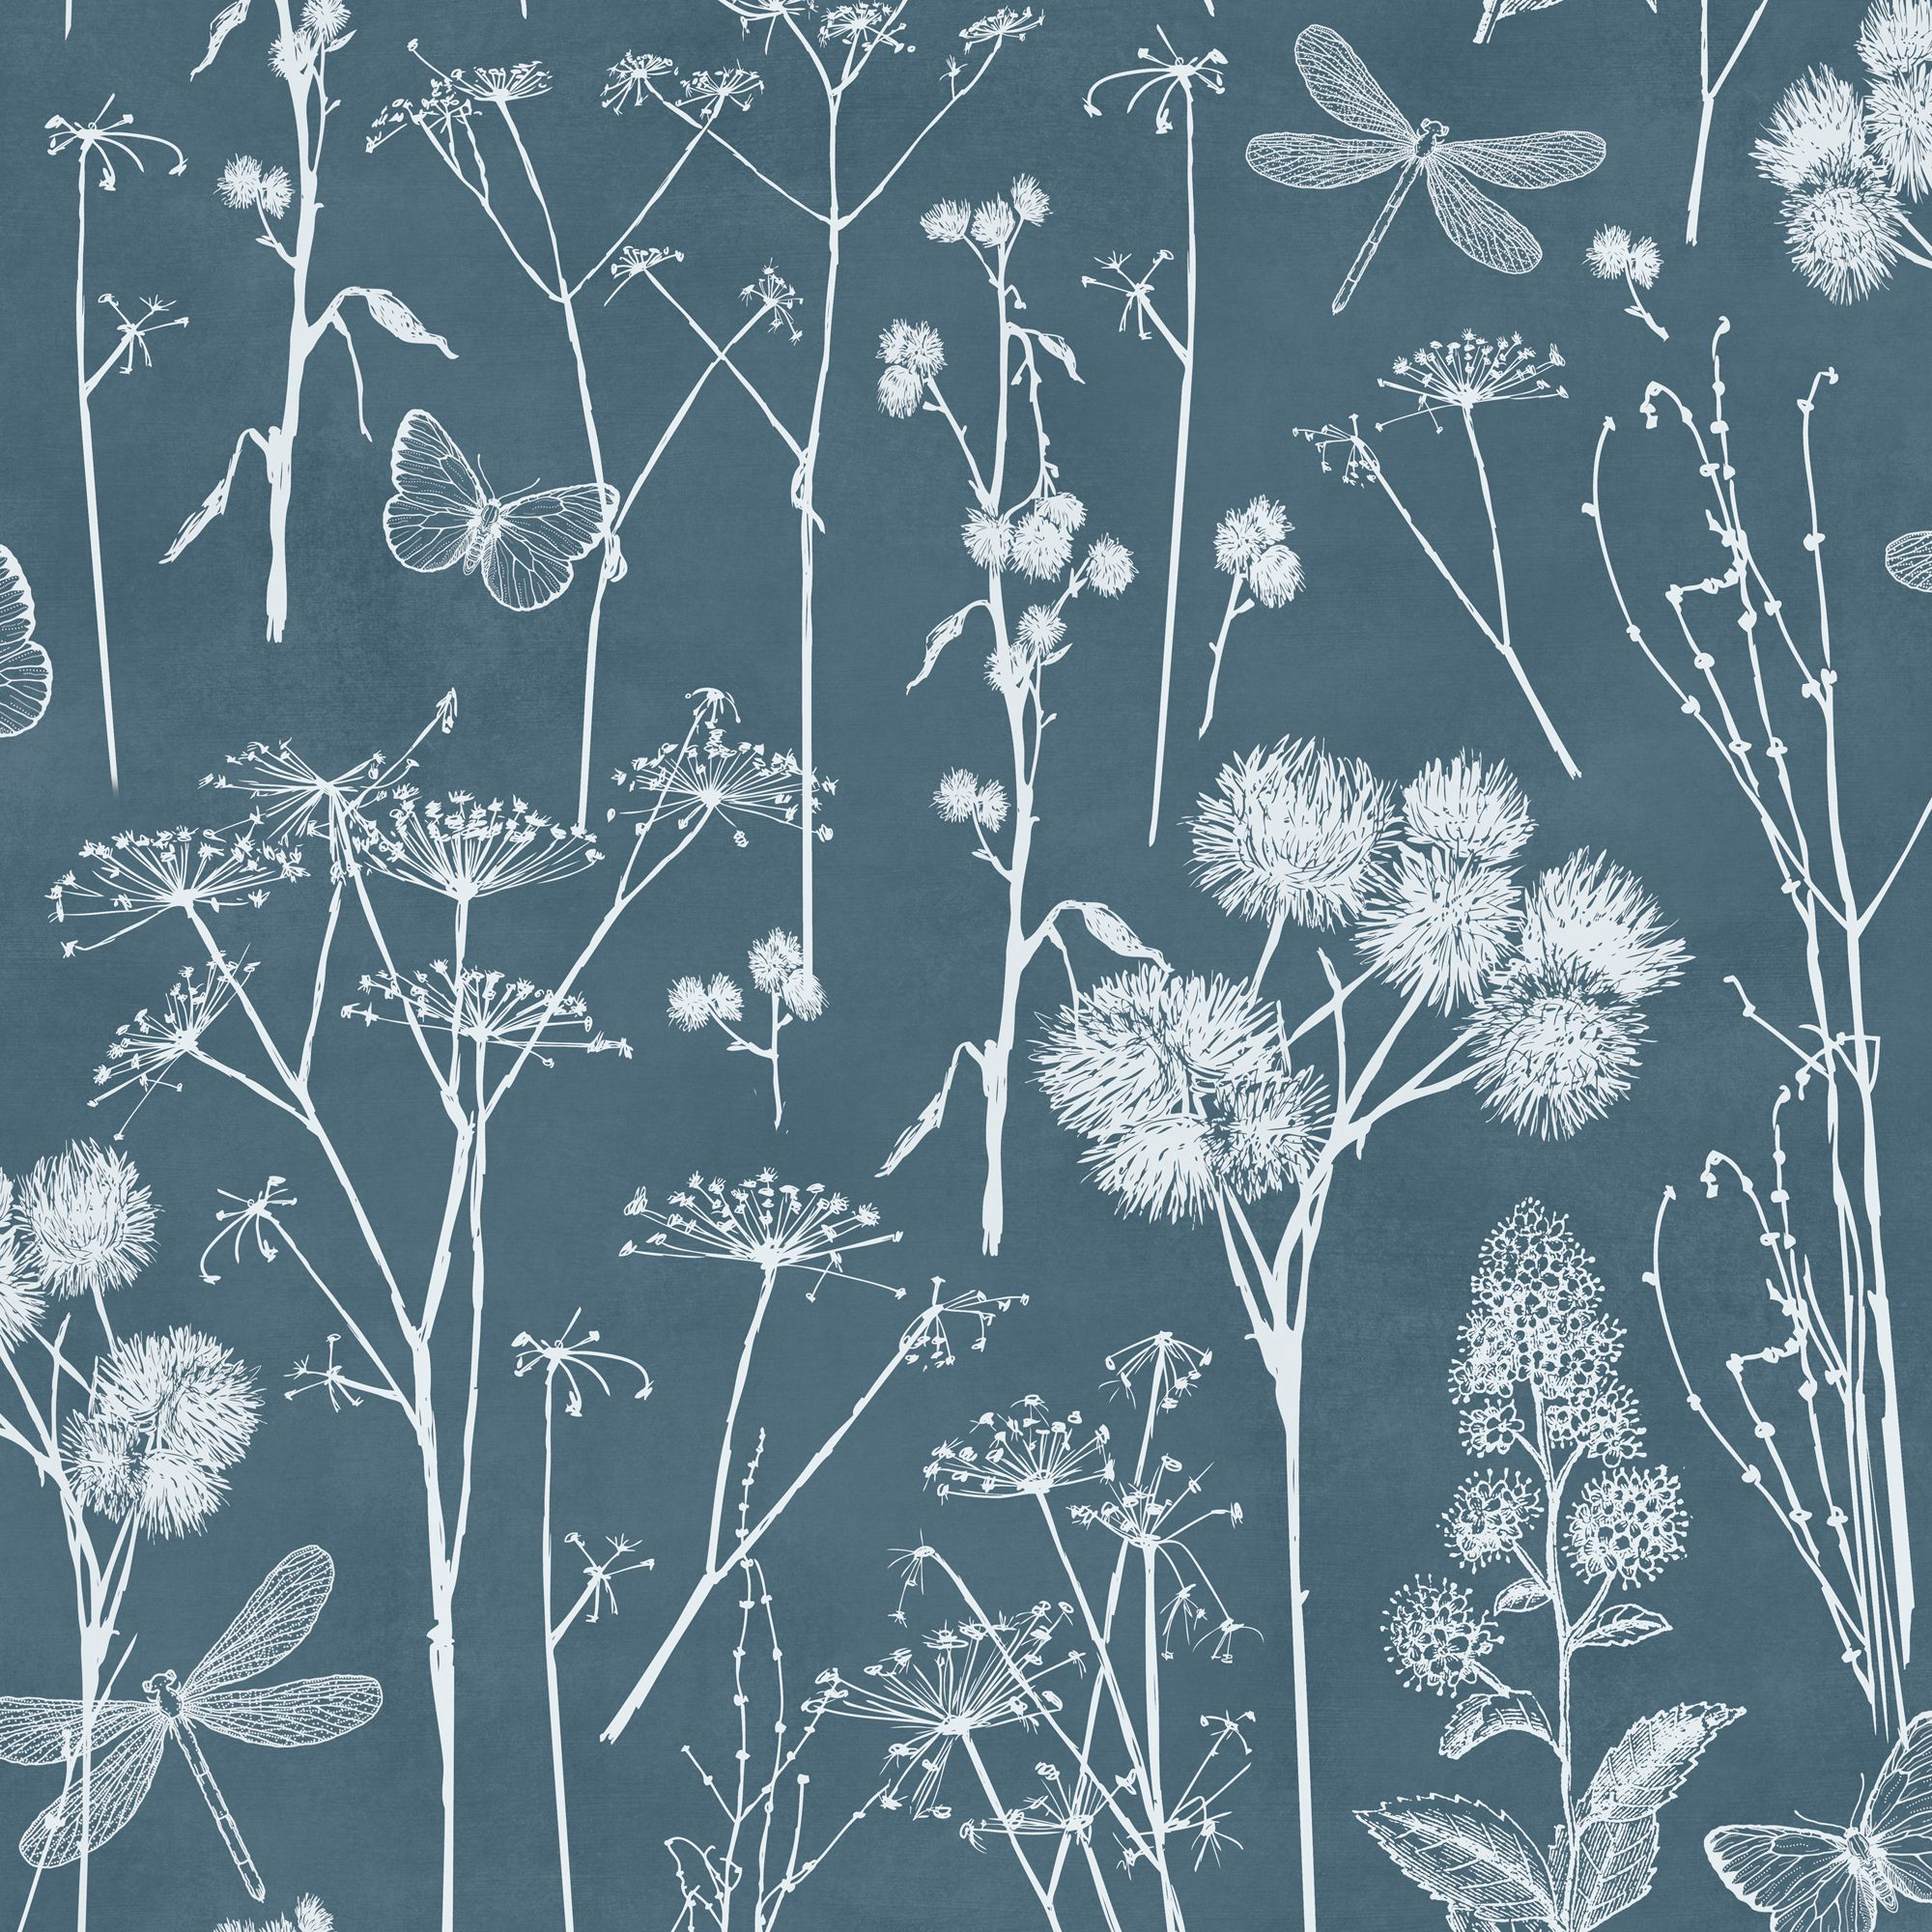 Botanical Blackboard Teal Foliage Wallpaper Departments